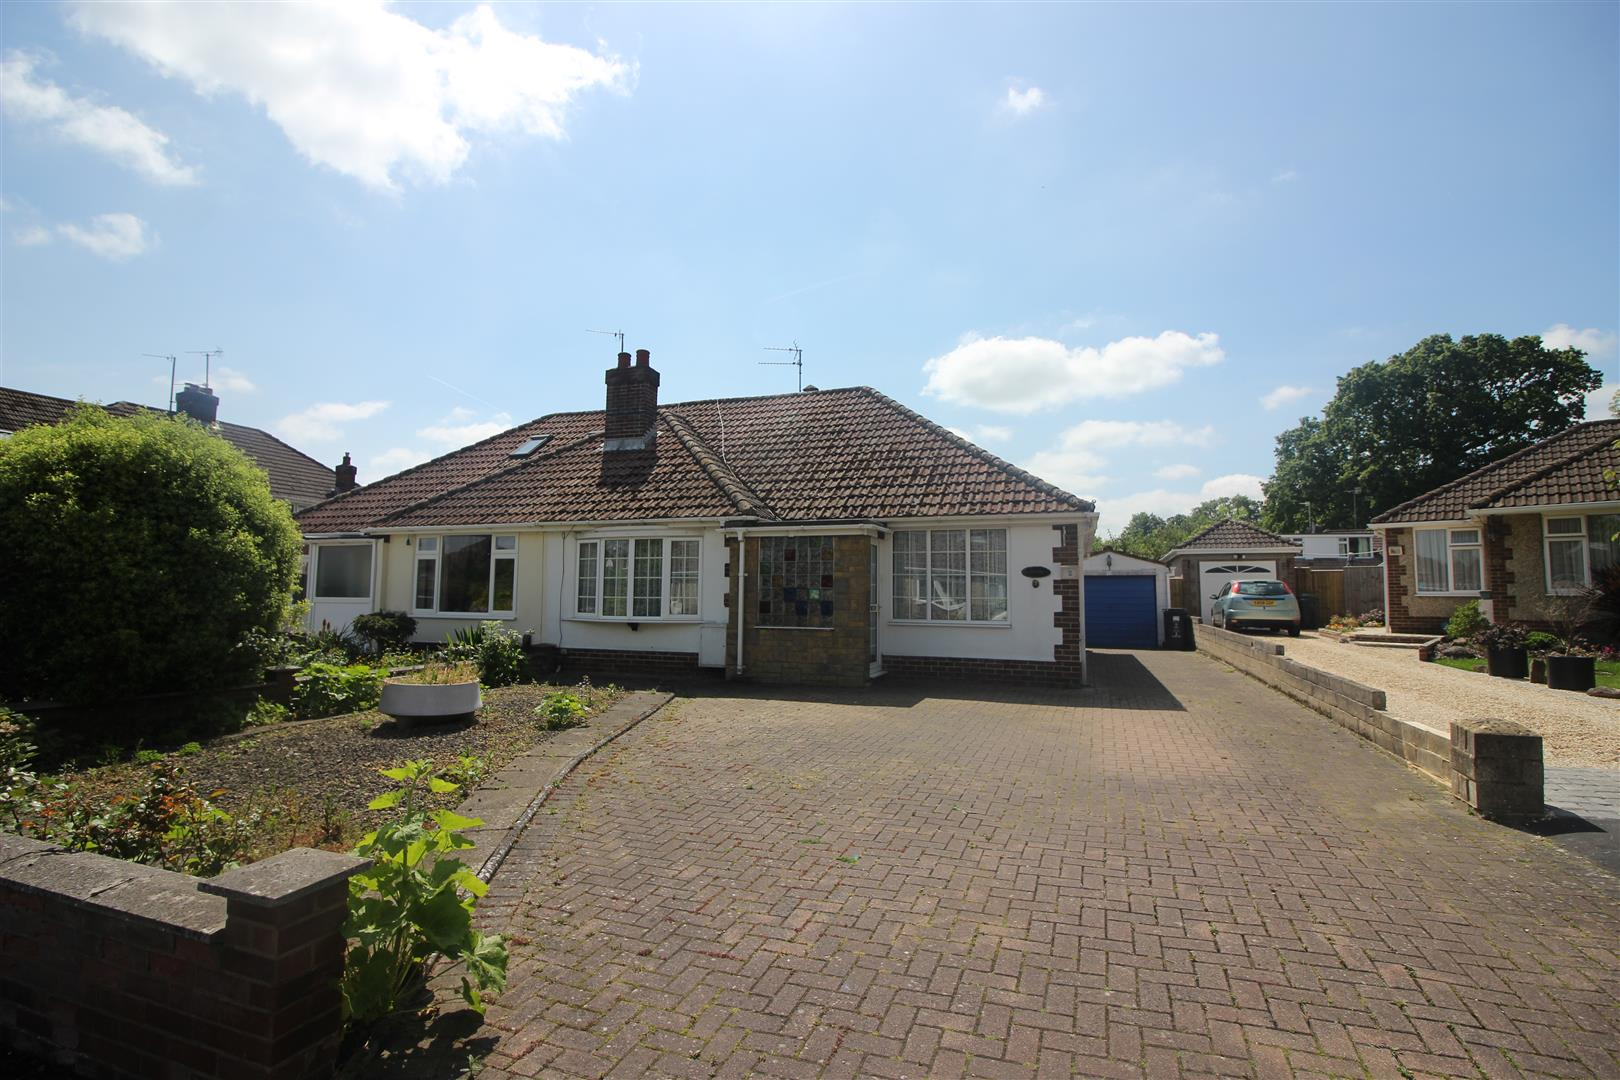 3 Bedrooms Bungalow for sale in Ludlow Close, Lawn, Swindon